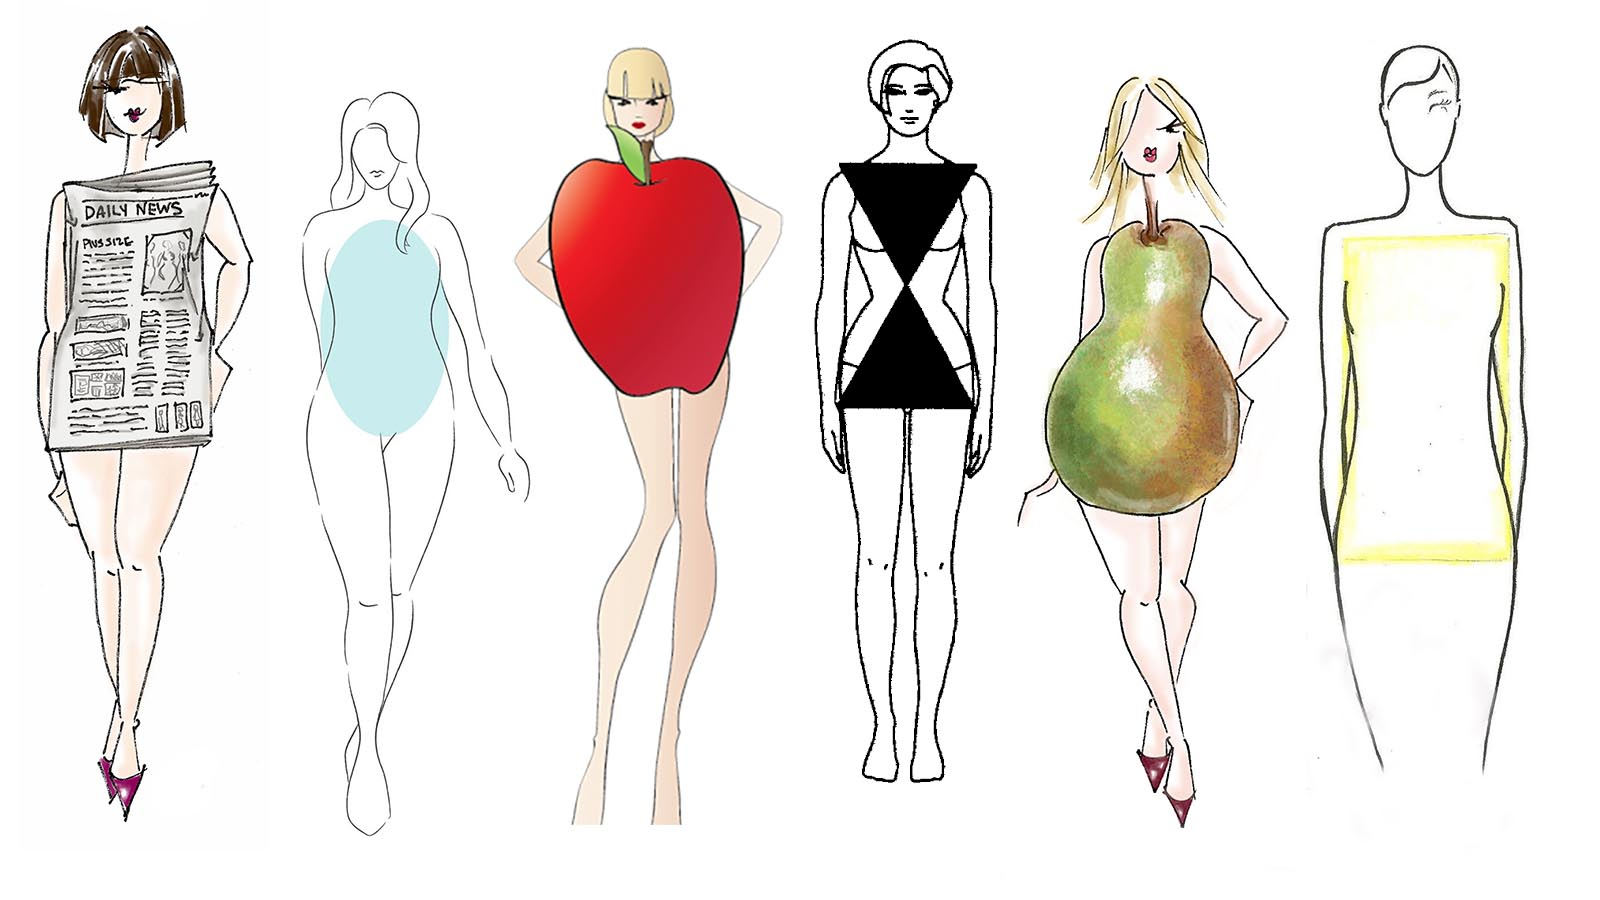 It S Time We Stop Comparing Women S Body Shapes To Fruit